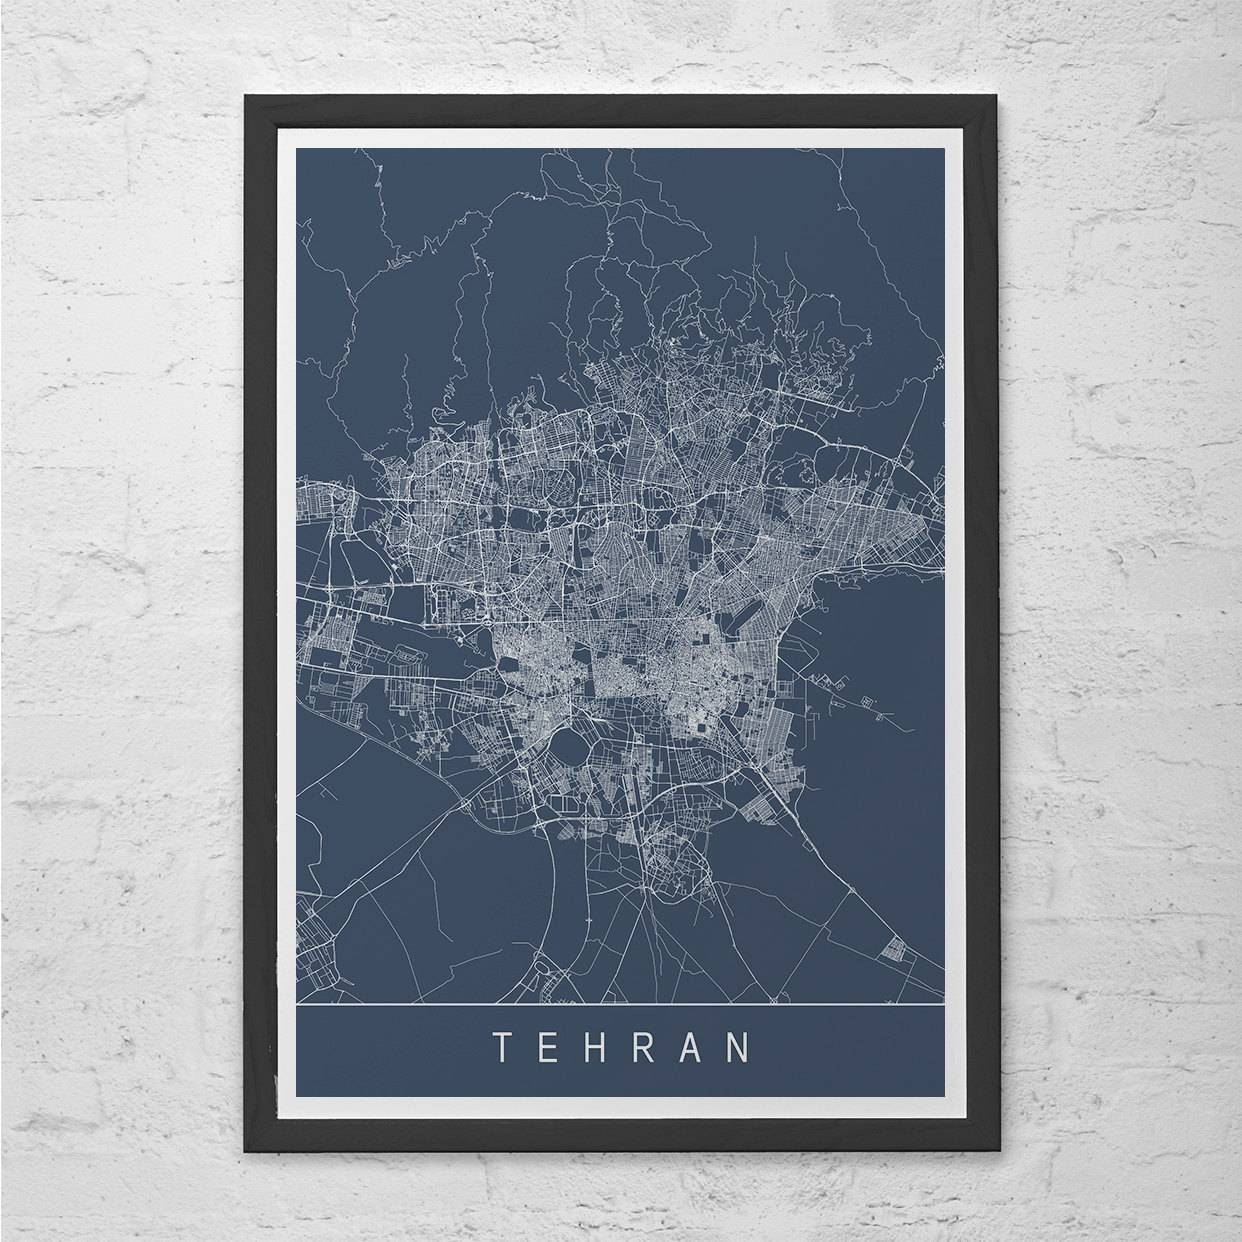 Tehran Map Print Modern City Print Art Customizable City Pertaining To Current City Prints Map Wall Art (Gallery 7 of 20)